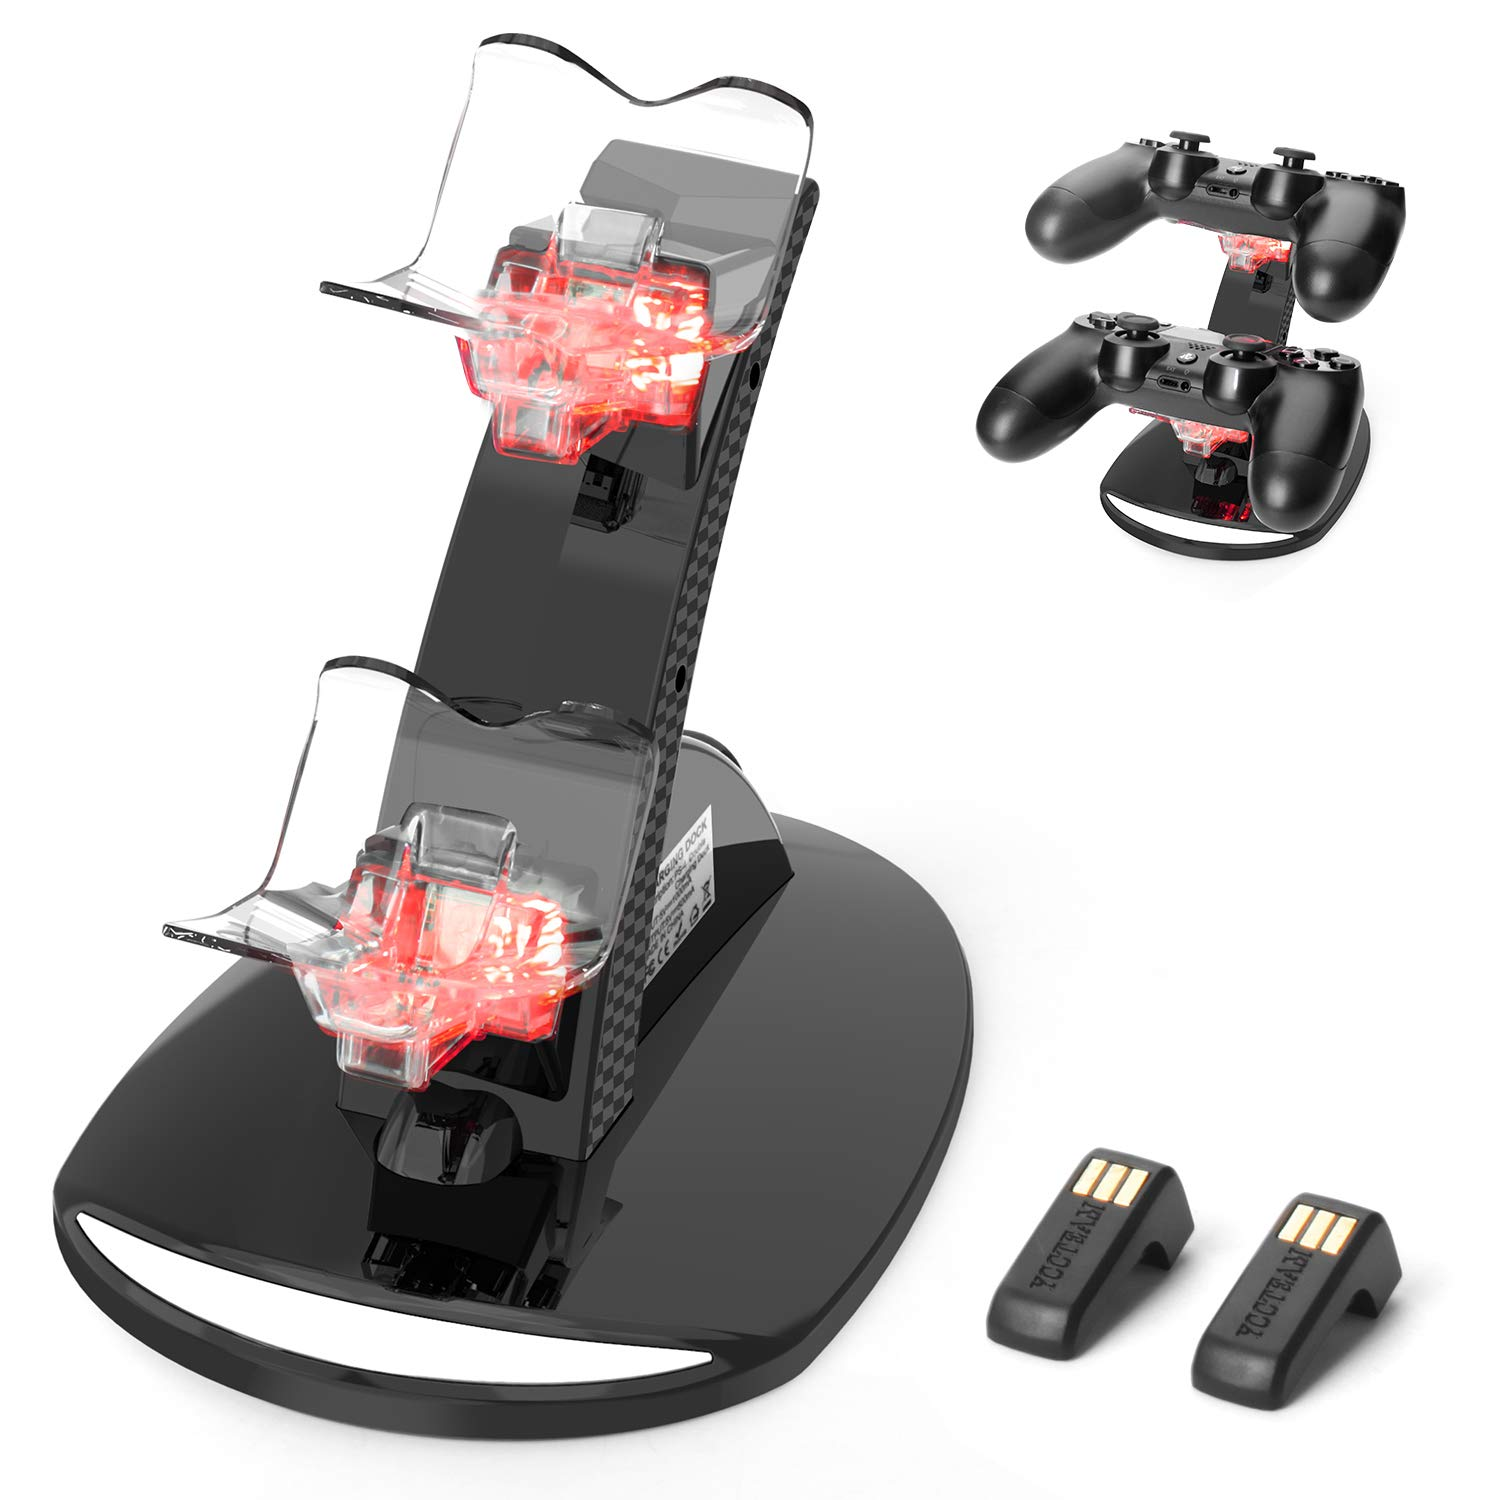 PS4 Controller Charger, PS4 Controller Charging Station Wireless Charger with 2 USB Charging Cable【Advanced Version】, PS4 Controller Charging Dock for PS4/PS4 Pro /PS4 Slim Controller by YCCTEAM